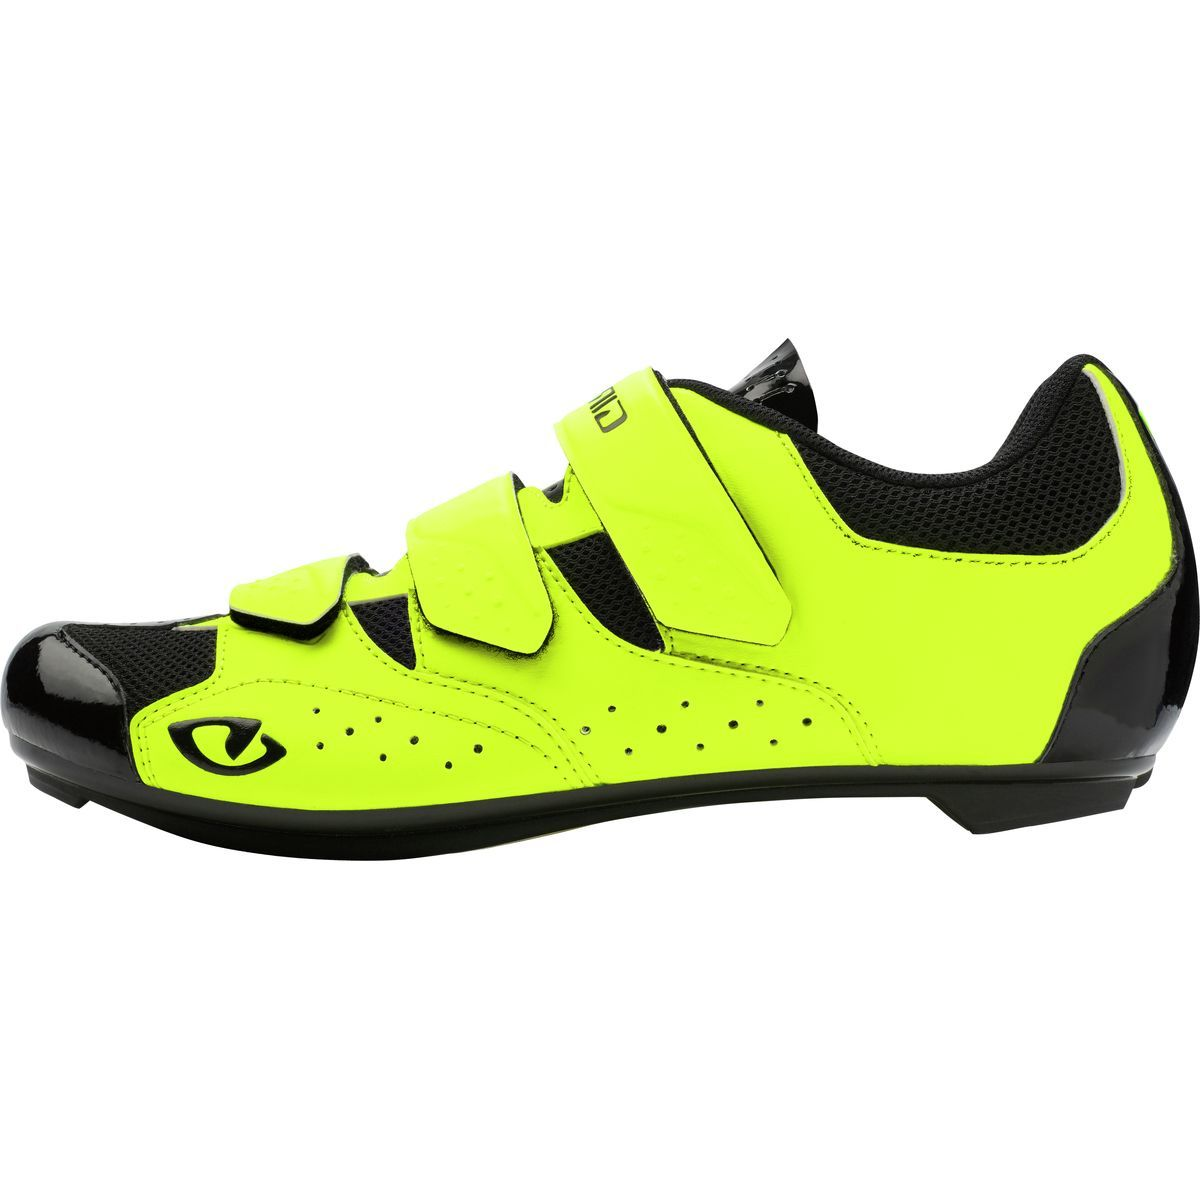 Giro Techne Cycling Shoe - Men's